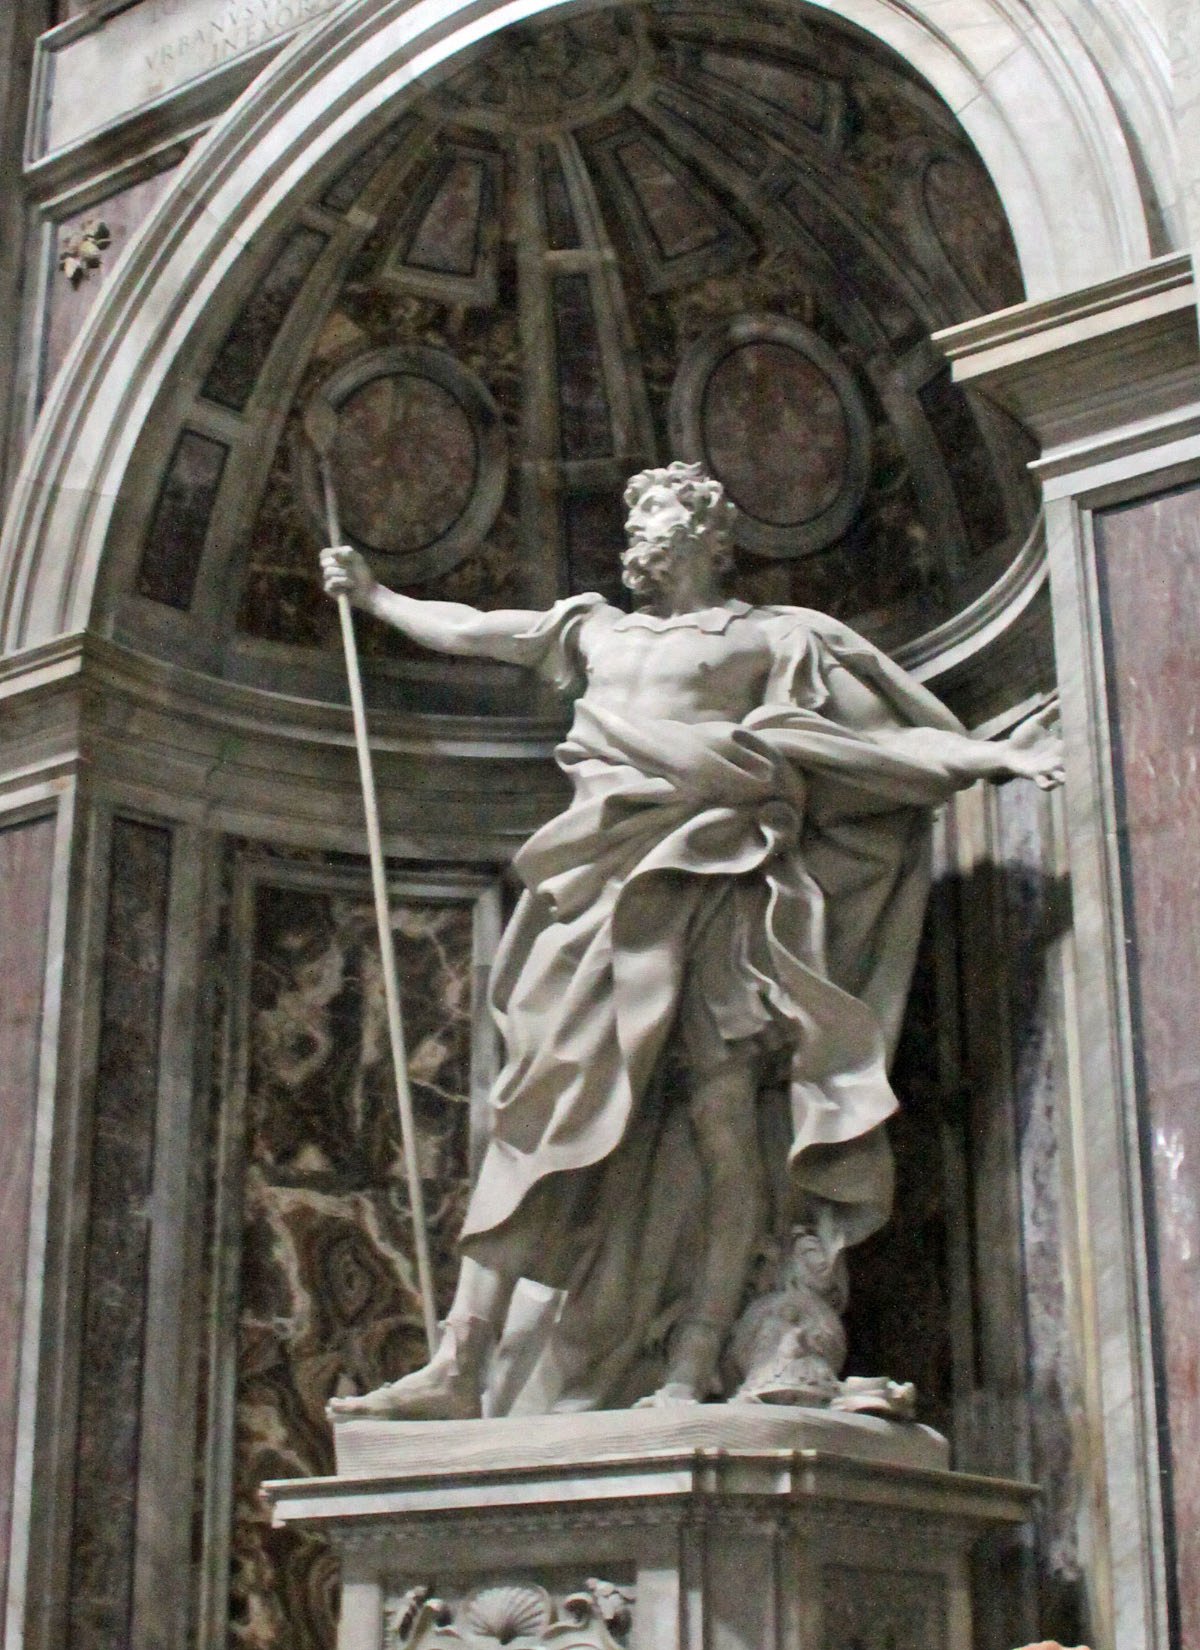 St. Peter's Basilica - Statue